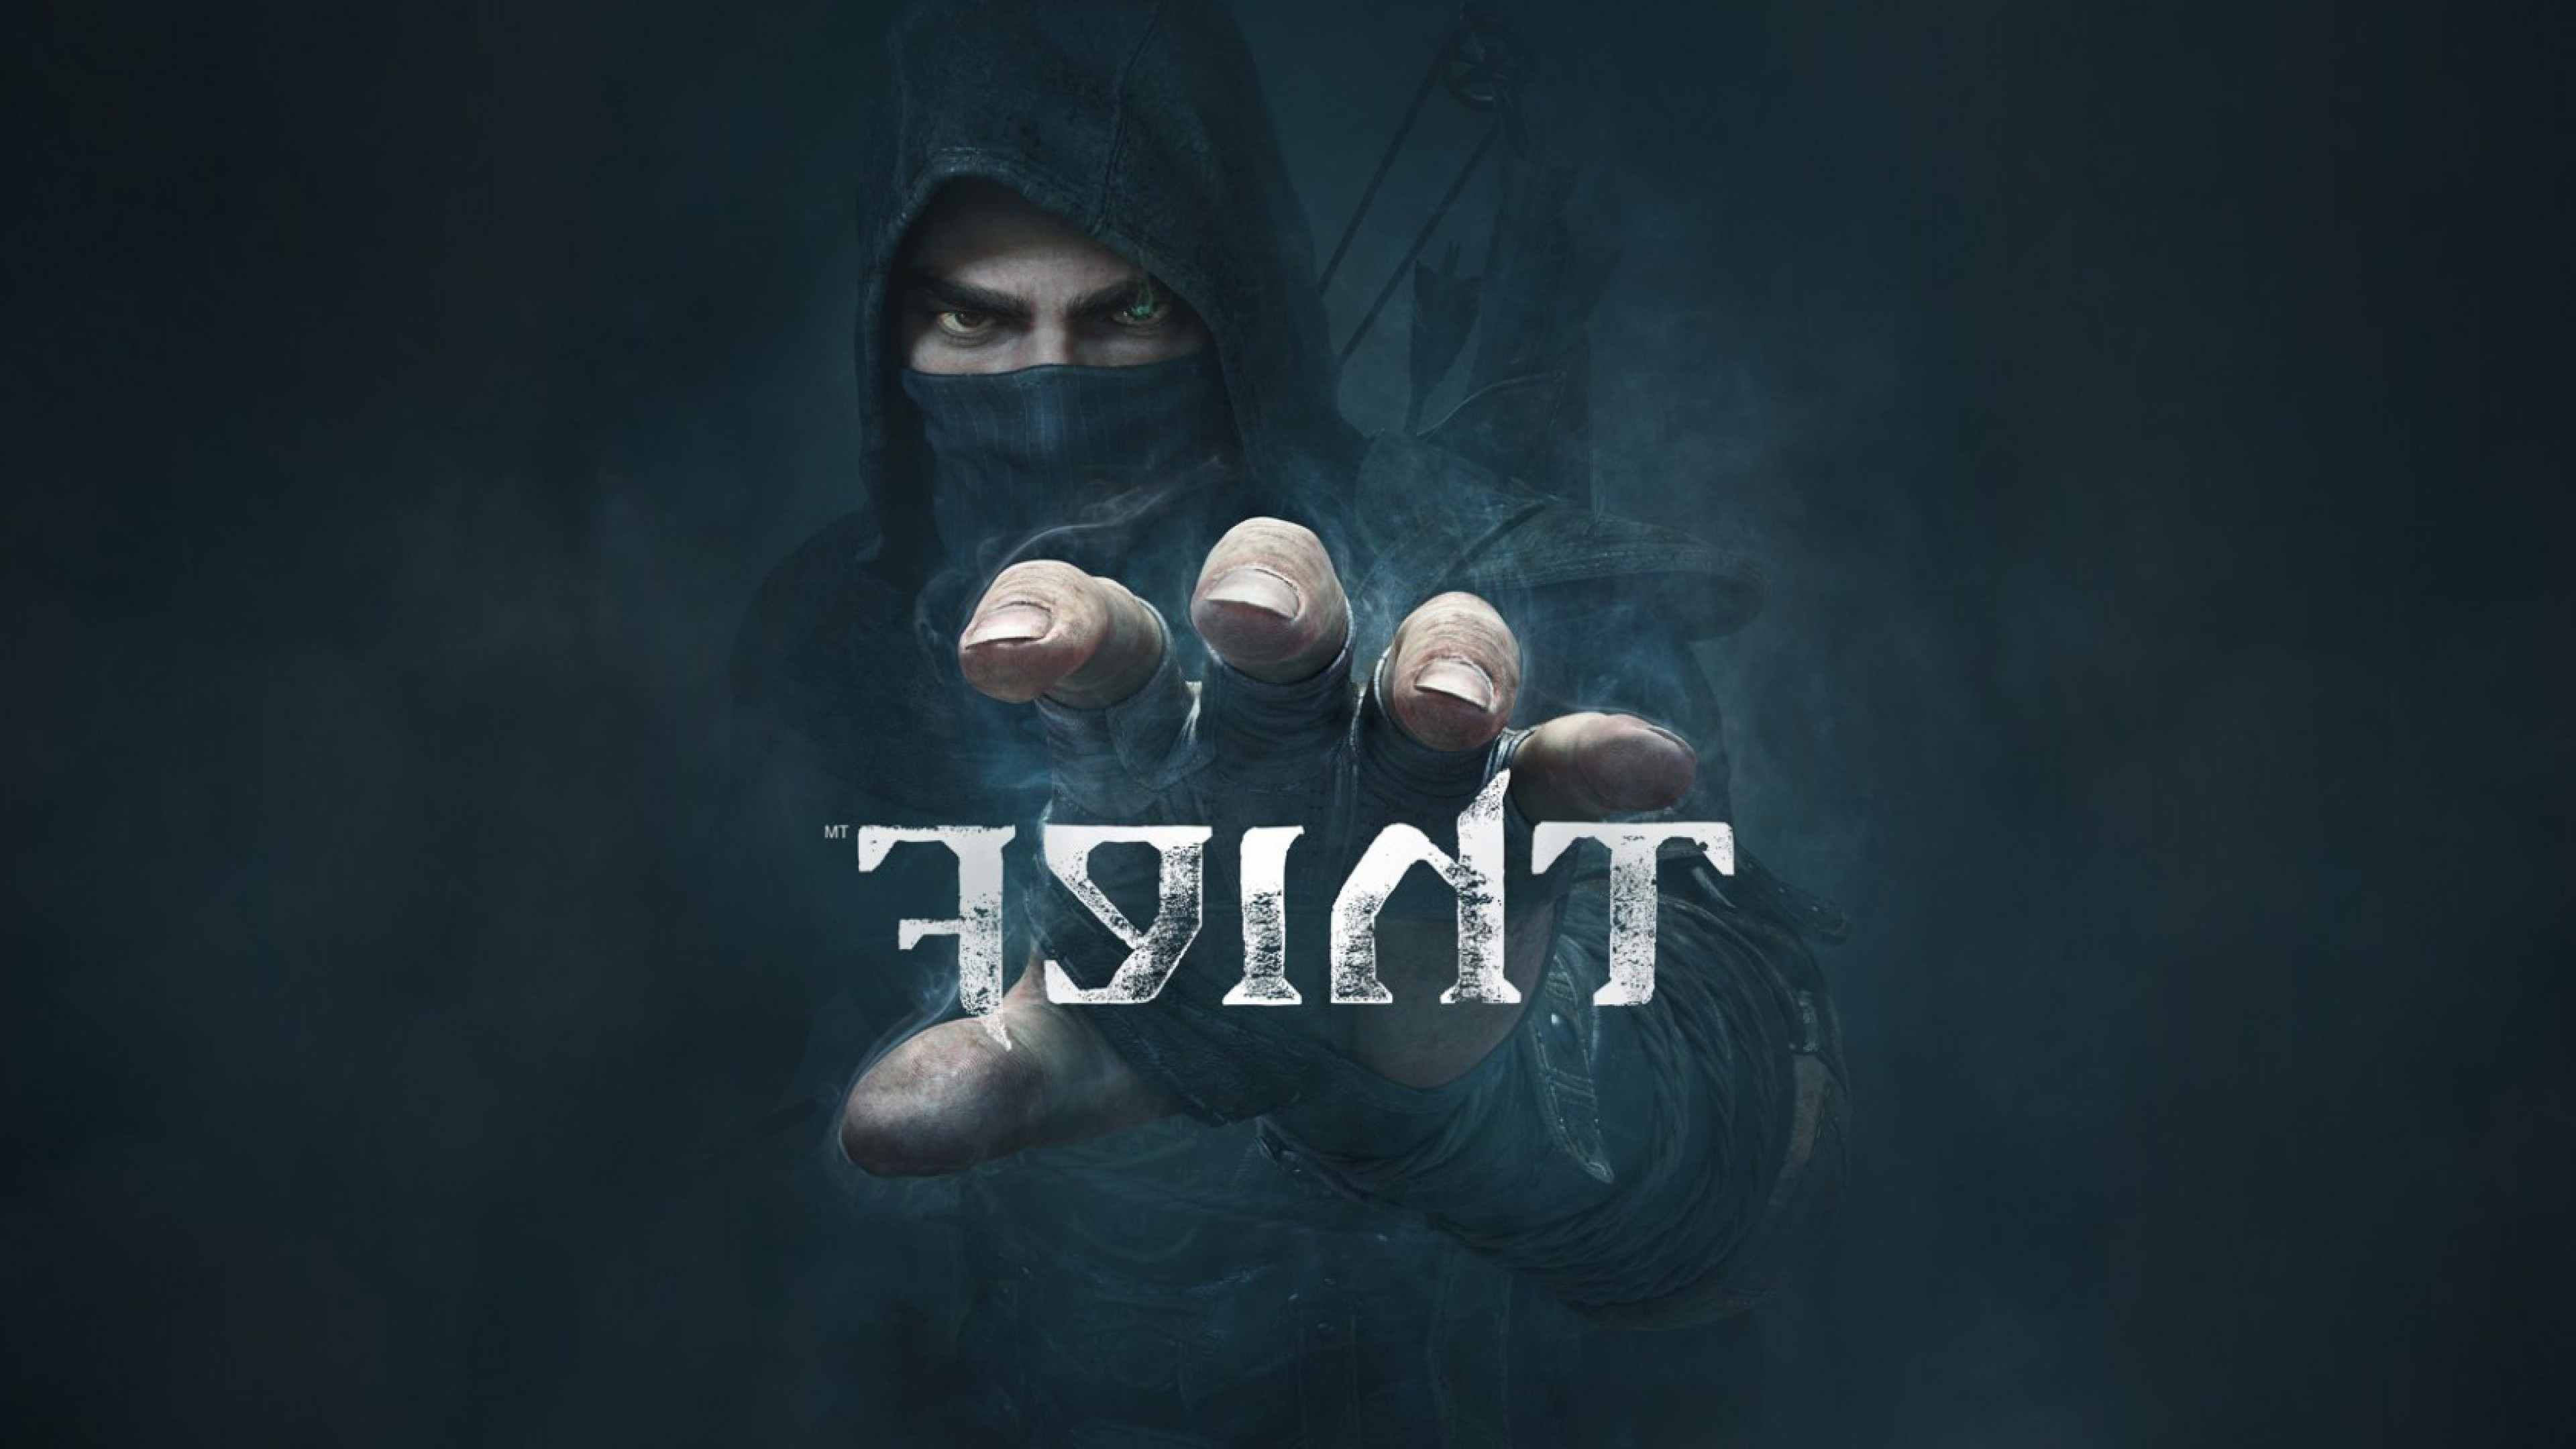 thief video game 1535966472 - Thief Video Game - xbox games wallpapers, thief wallpapers, ps4 games wallpapers, pc games wallpapers, games wallpapers